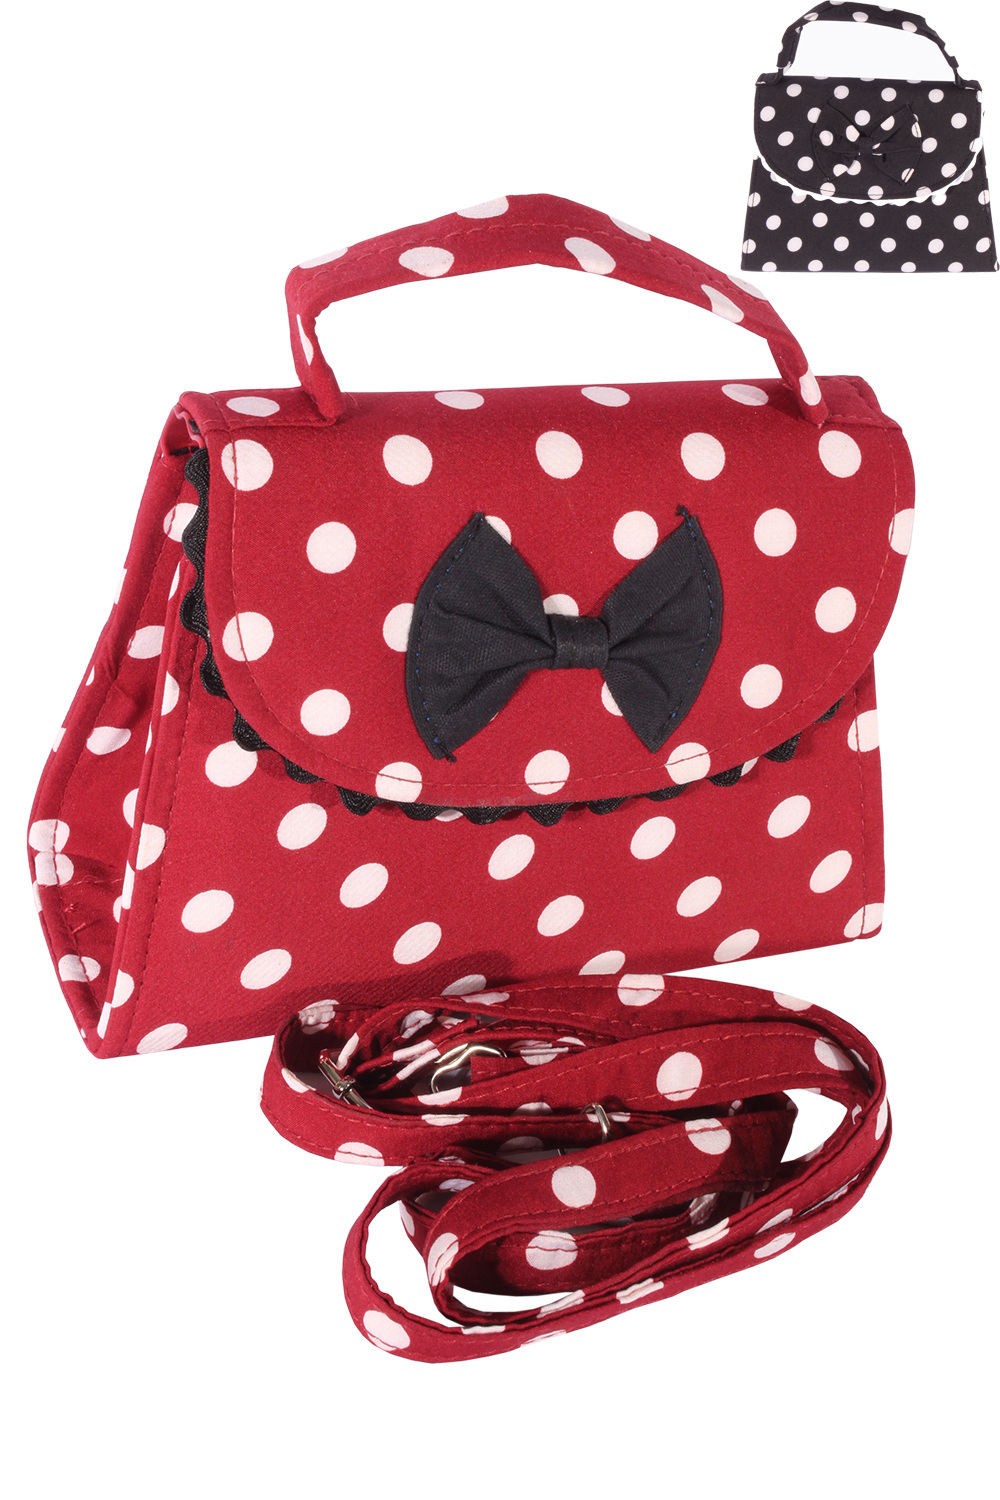 Fifties POLKA DOTS rockabilly BOW Tasche Köfferchen Handtasche